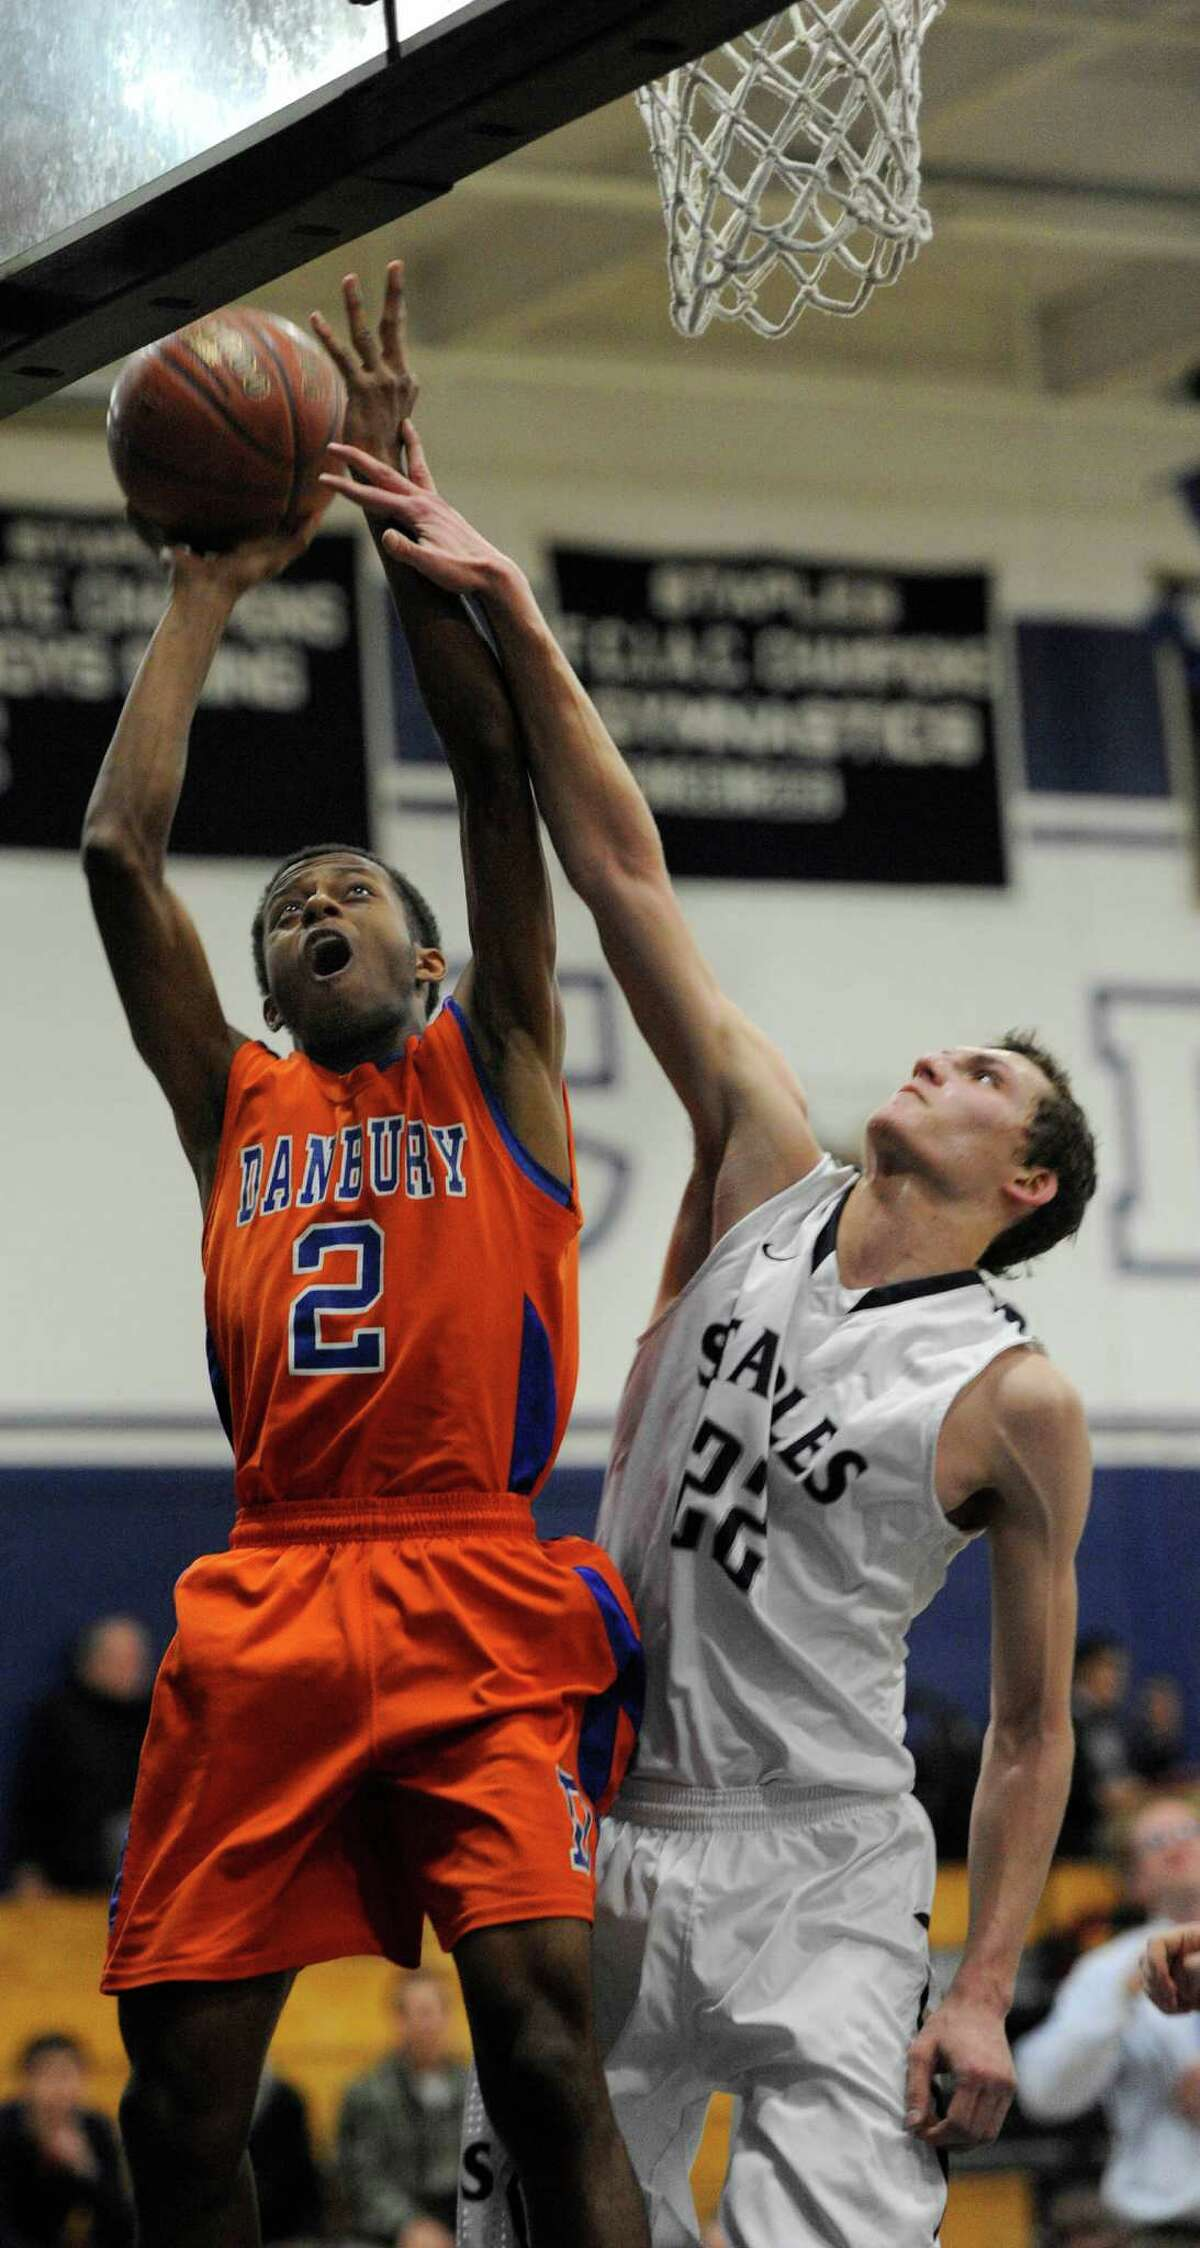 Staples high school's Nick Esposito tries to stop Danbury high school's Elijah Duffy from scoring a layup during a boys basketball game played at Staples, Westport, CT on Wednesday, December,18th, 2013.